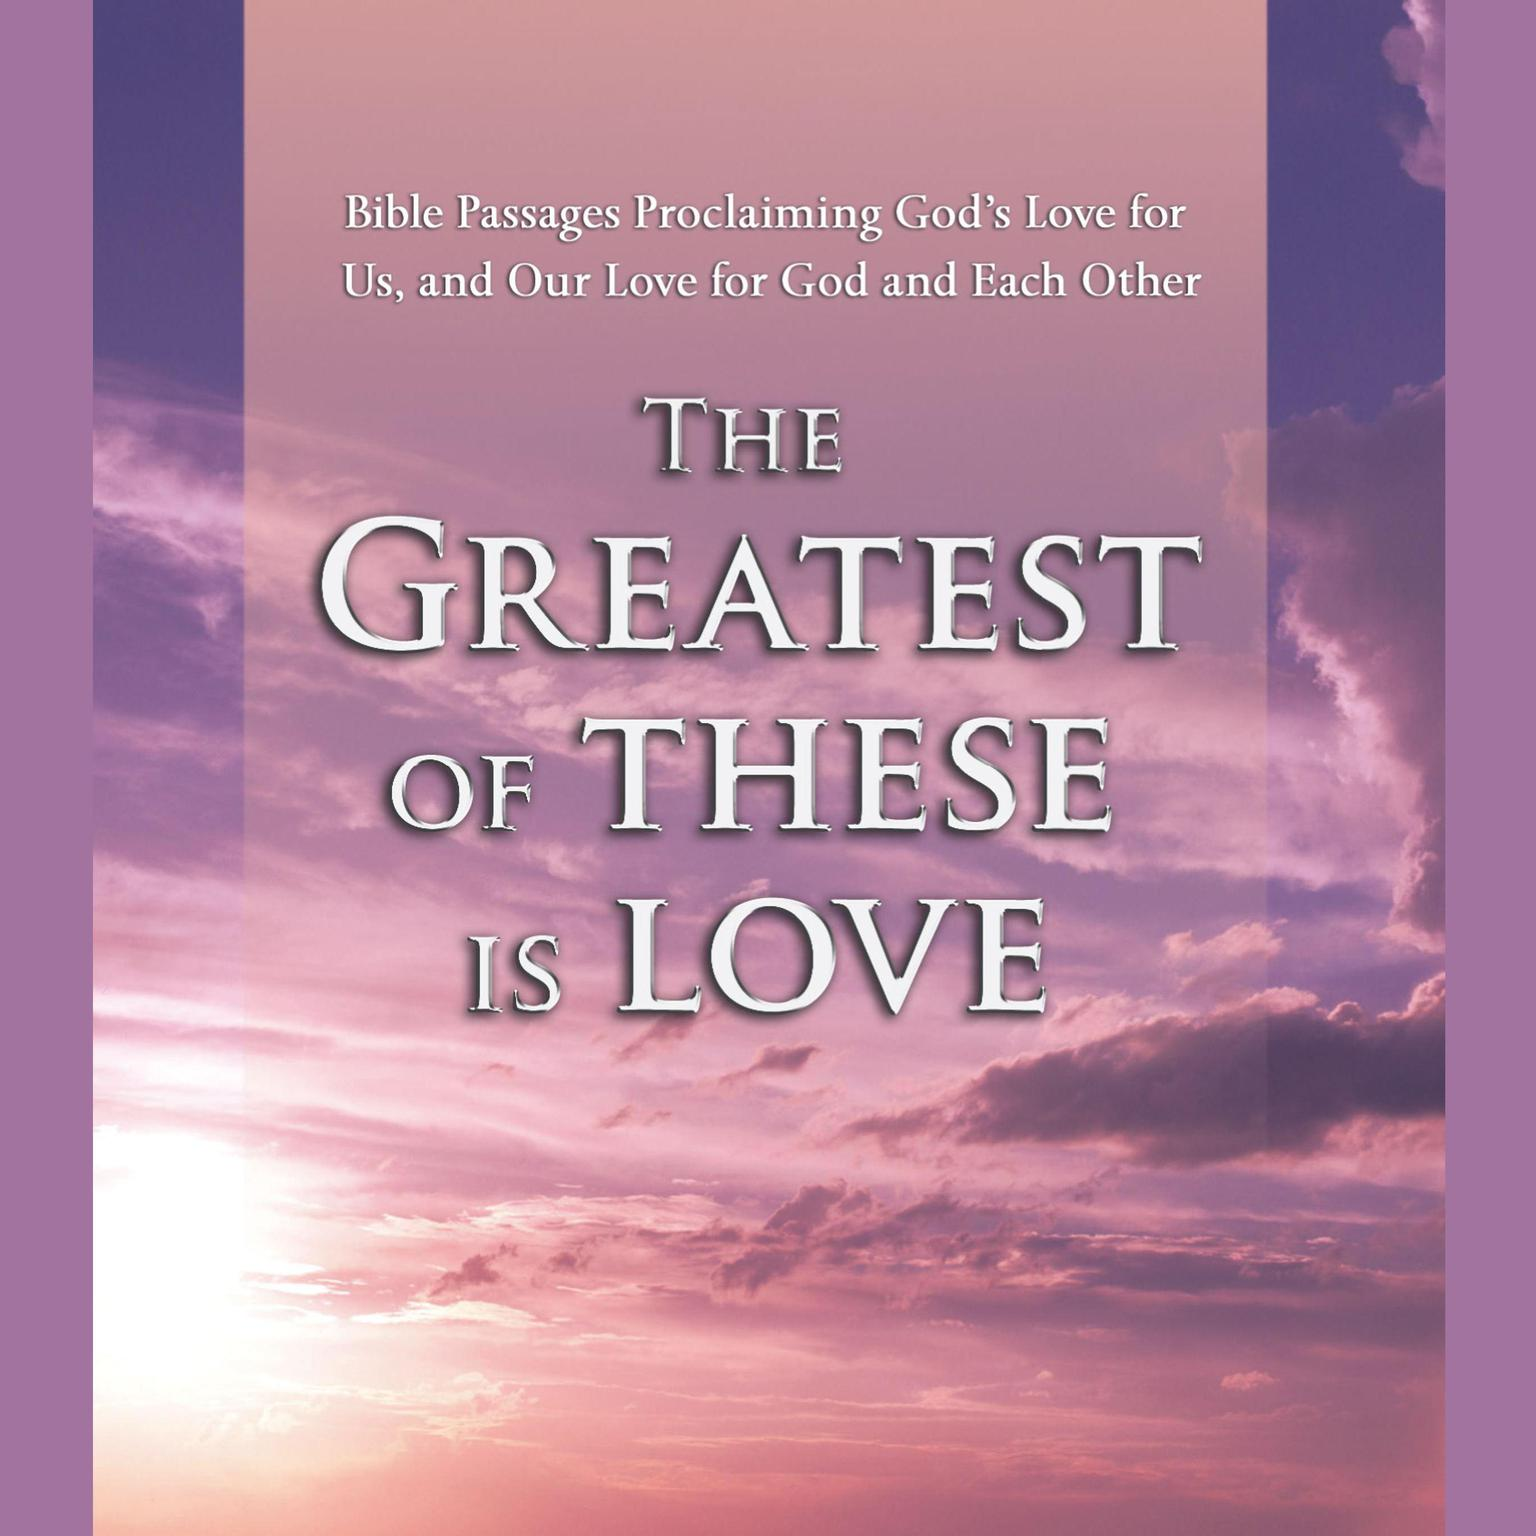 Printable The Greatest of These Is Love: Bible Passages Proclaiming God's Love For Us, and Our Love for God and Each Other Audiobook Cover Art